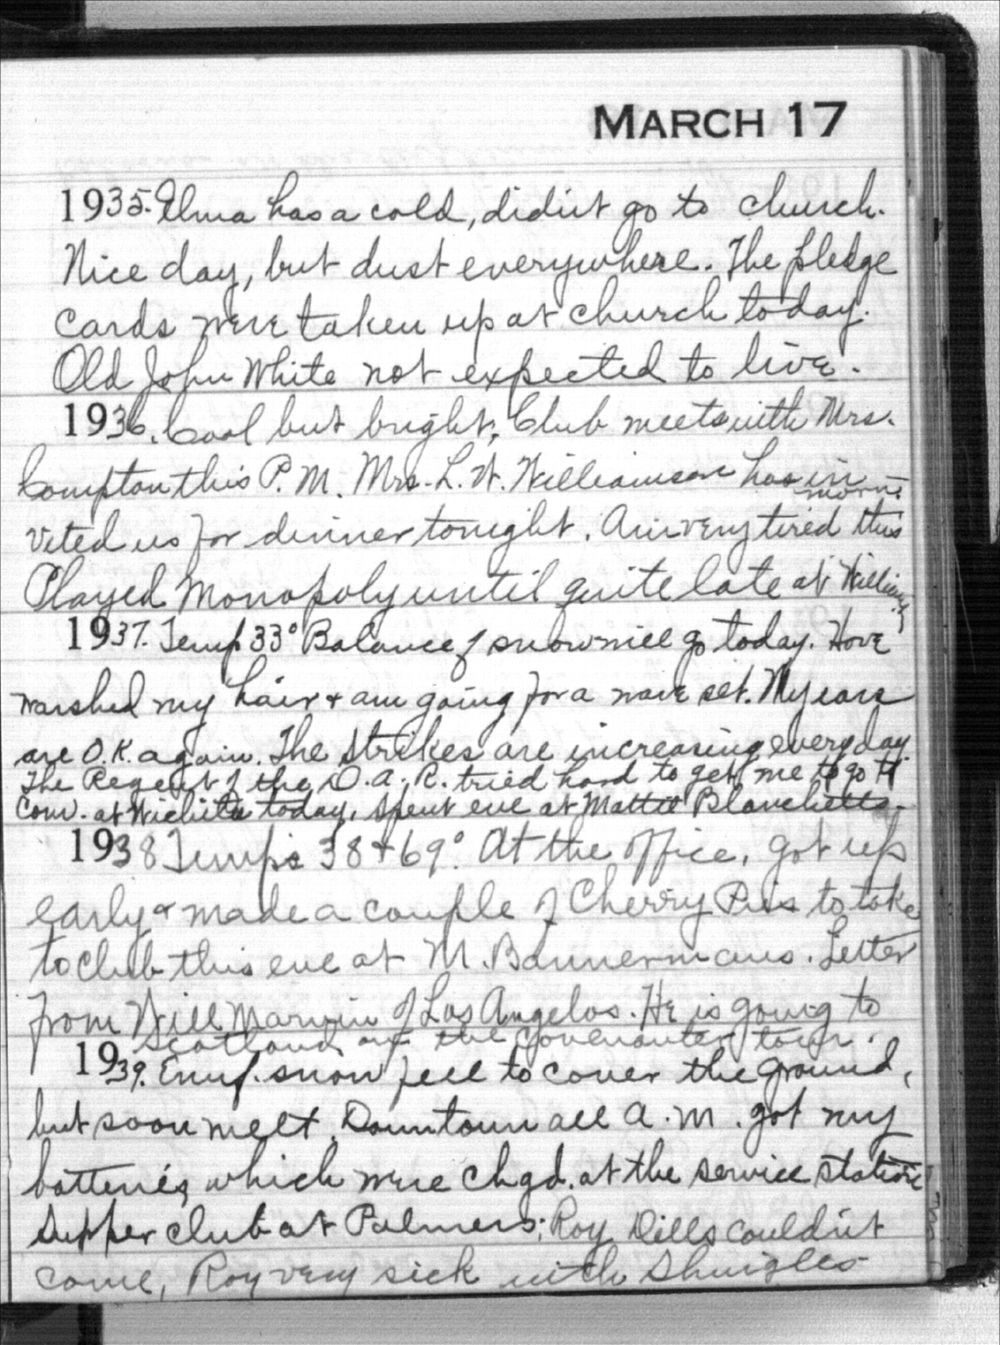 Mabel Holmes diary entries - March 17